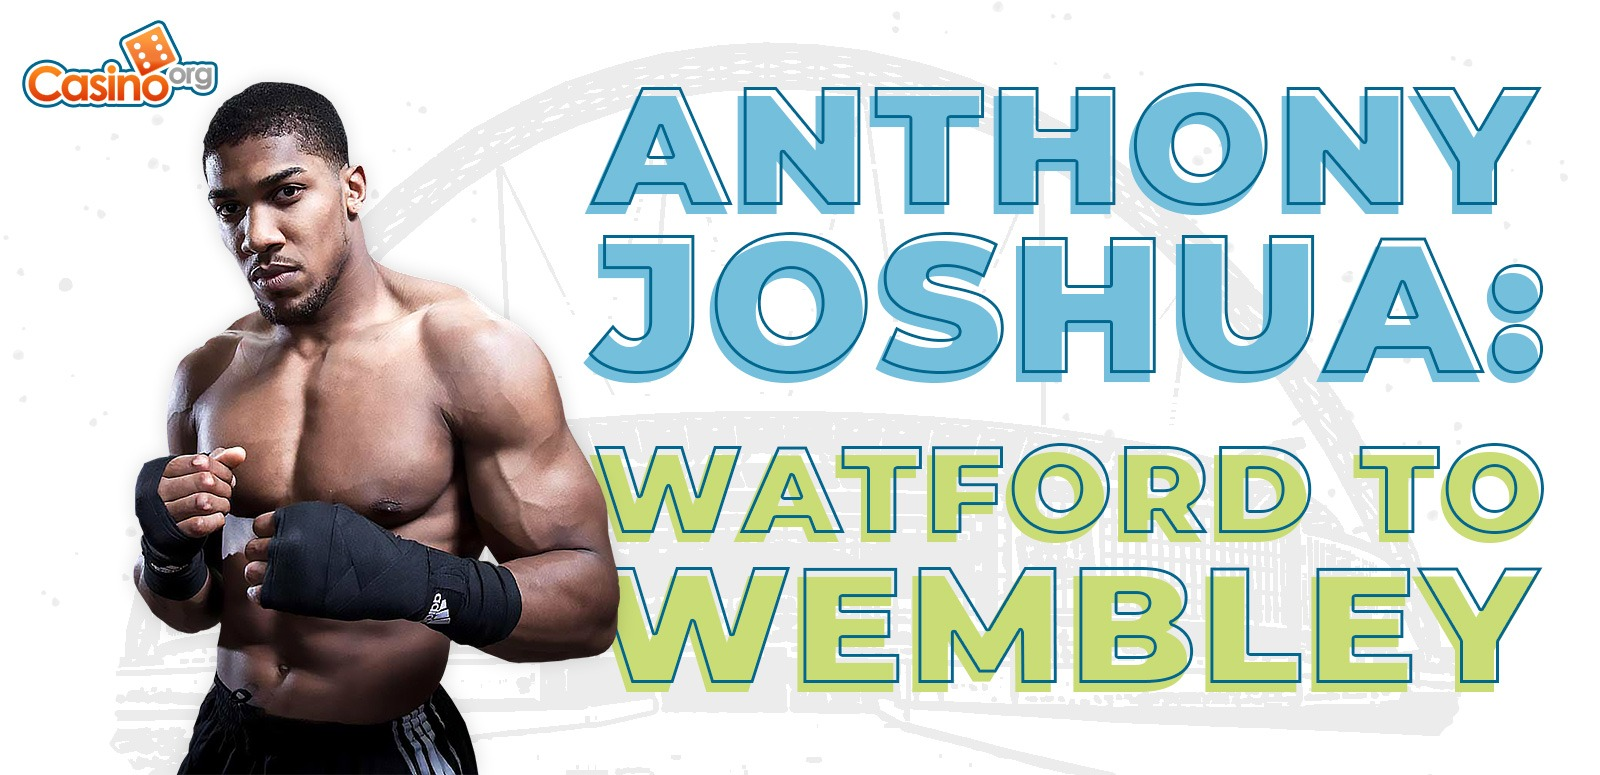 Anthony Joshua: Watford to Wembley